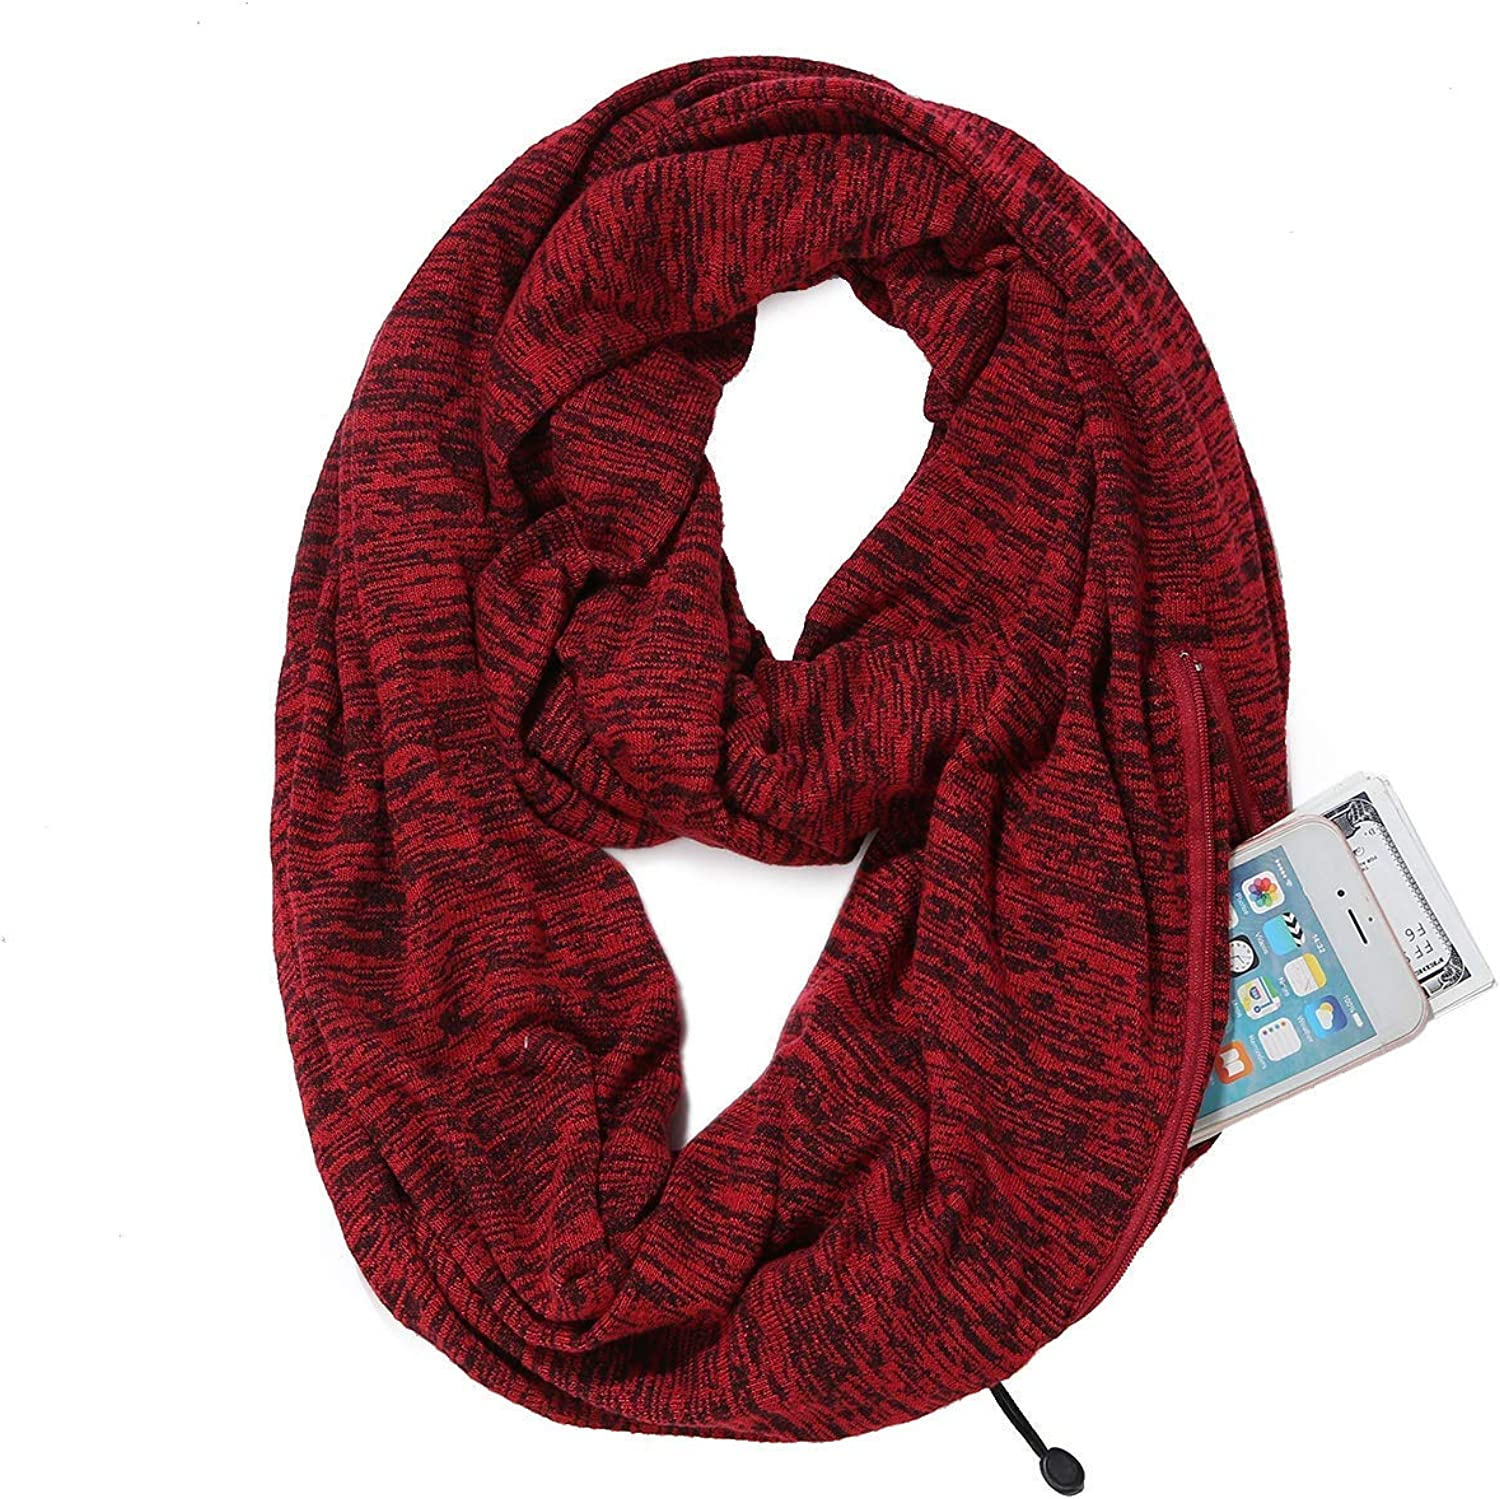 2 in 1 Slouchy Knit Cable Congreenible Infinity Scarf with Pocket